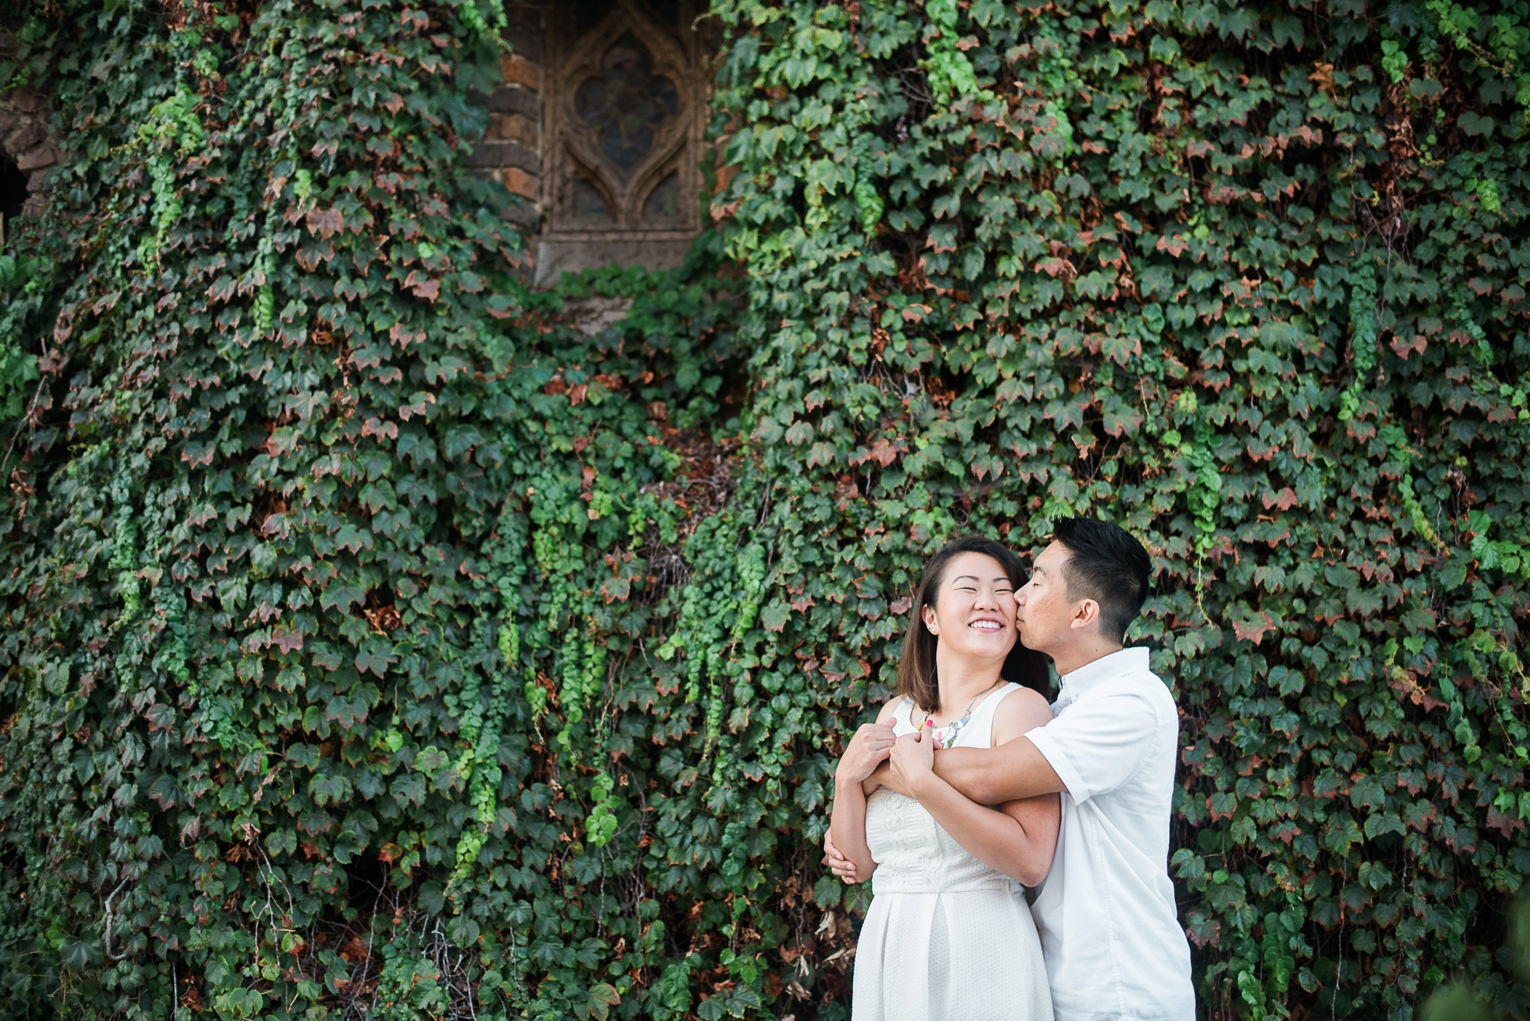 Old town Pasadena Engagement Photos | Brandi Welles Photographer_0007